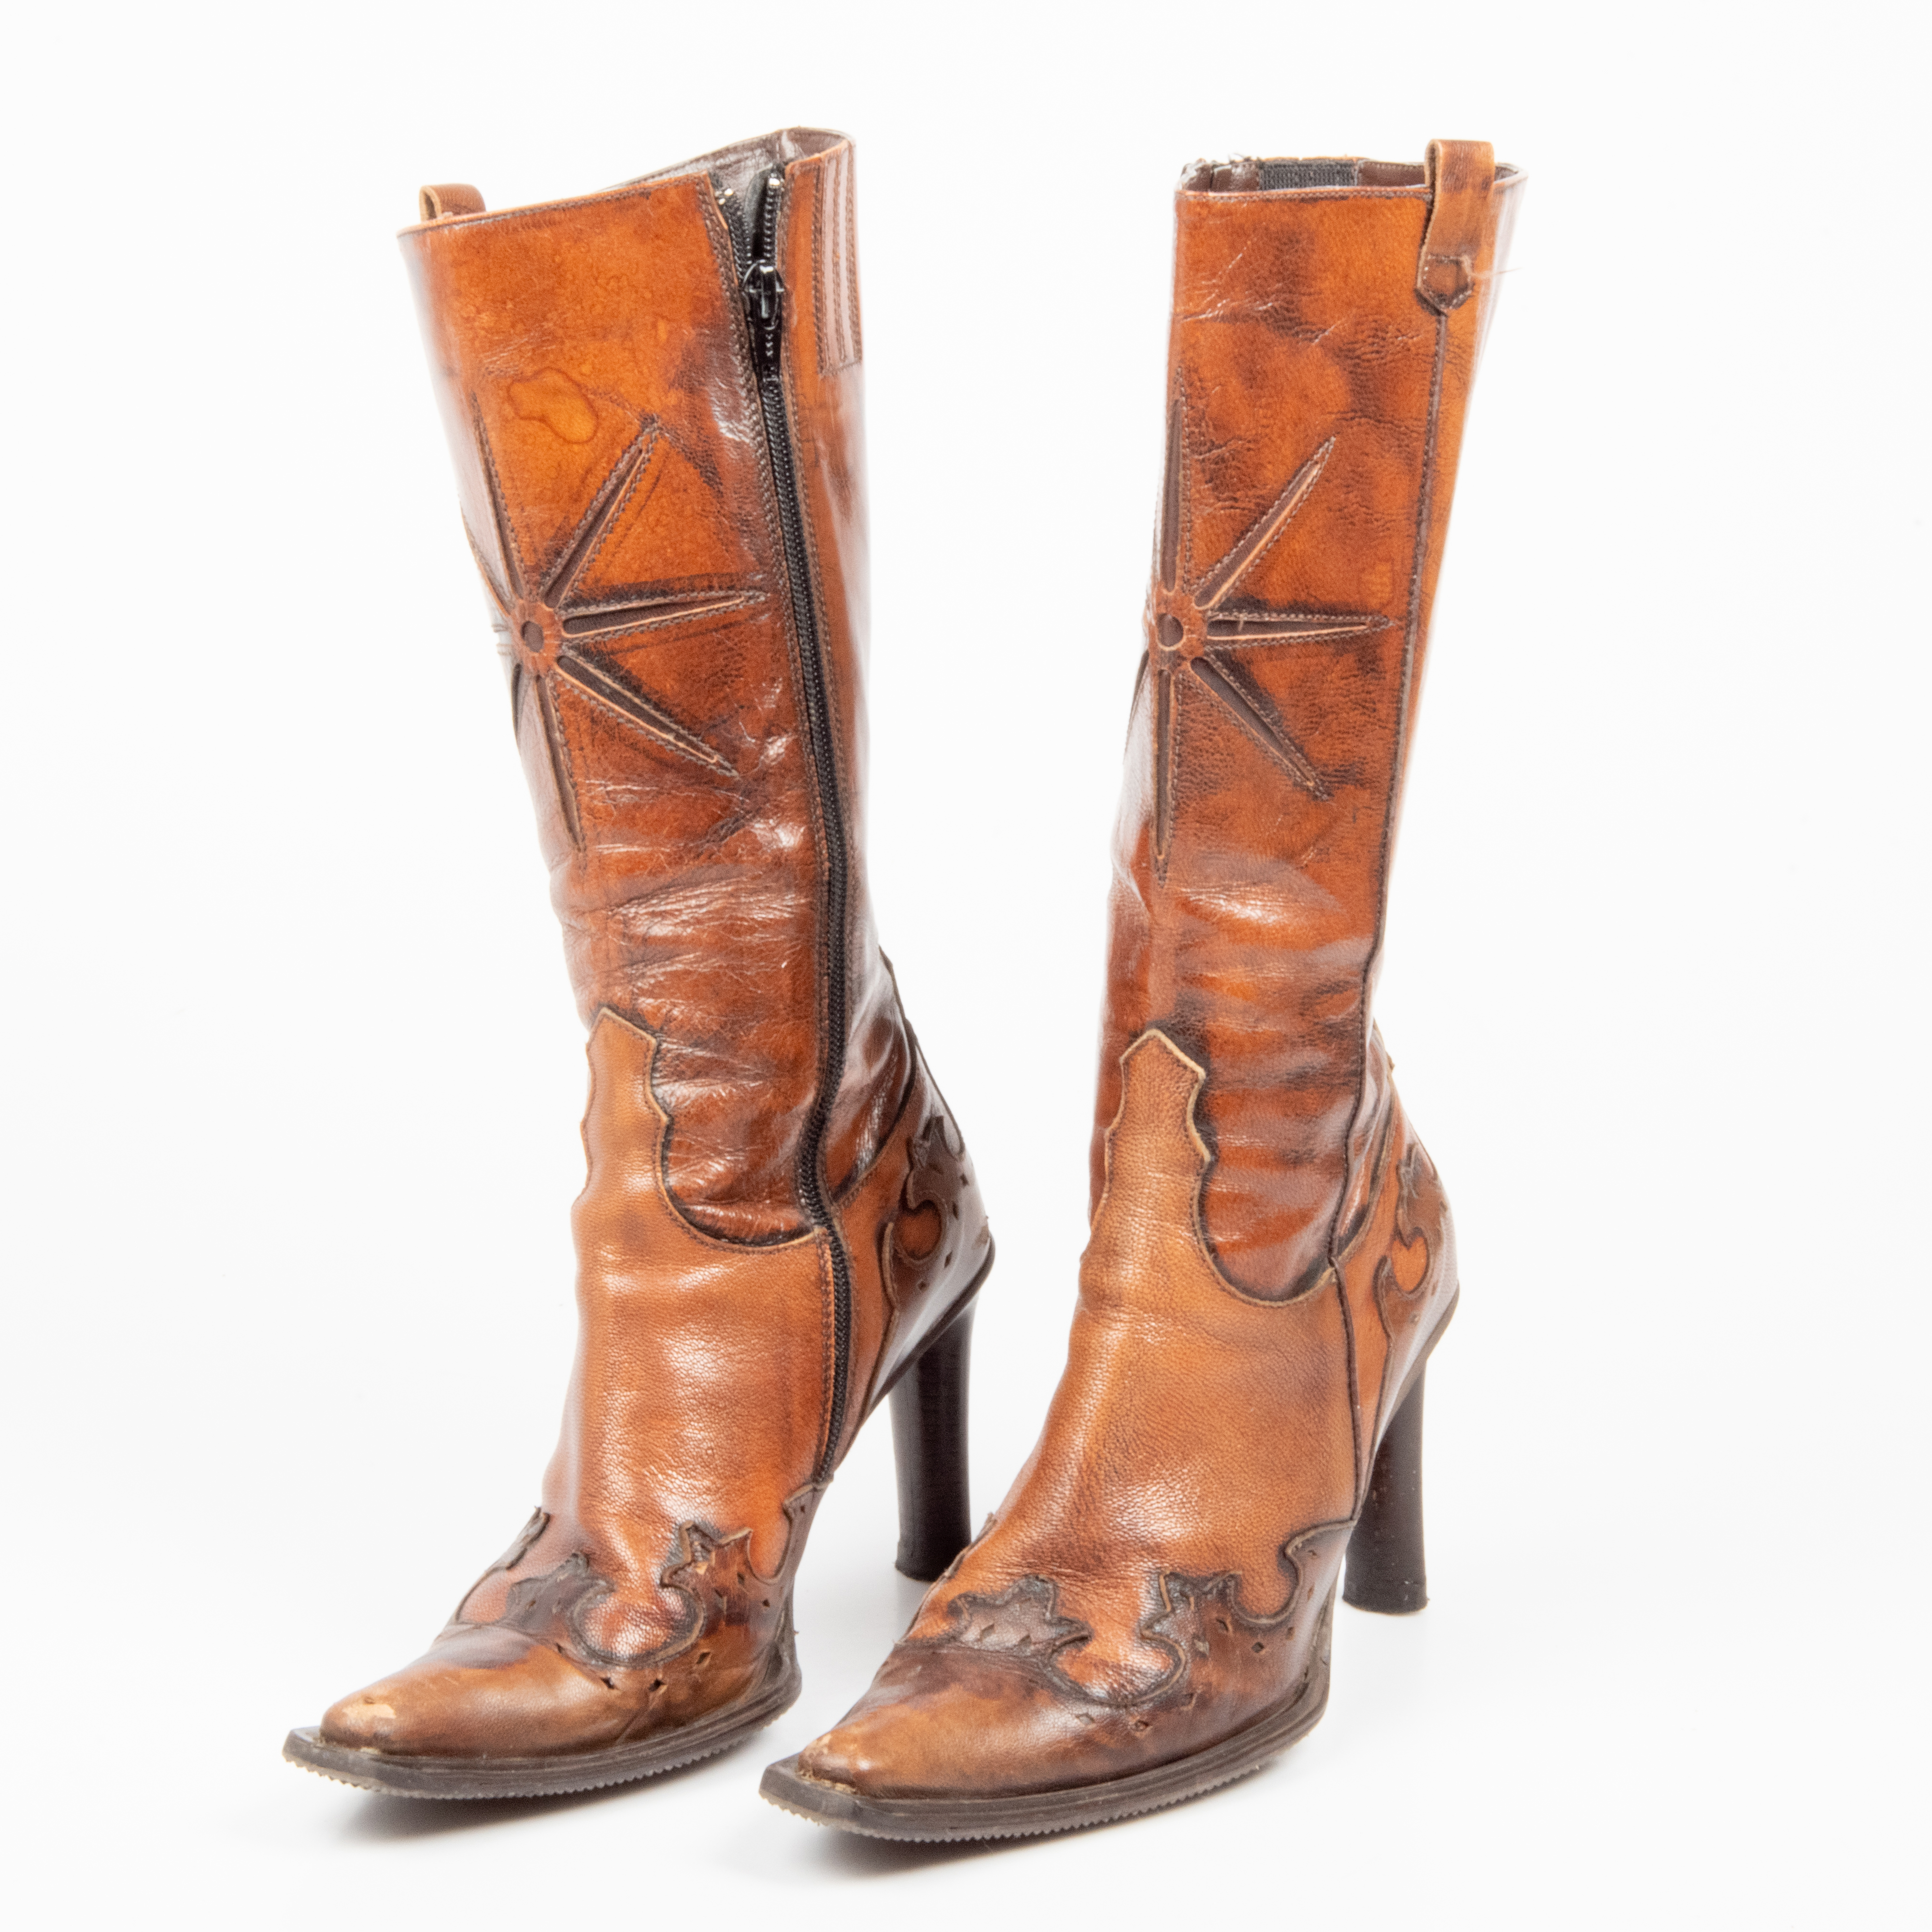 BOOTS, 1 pair, brown leather, Italy. Vintage clothing